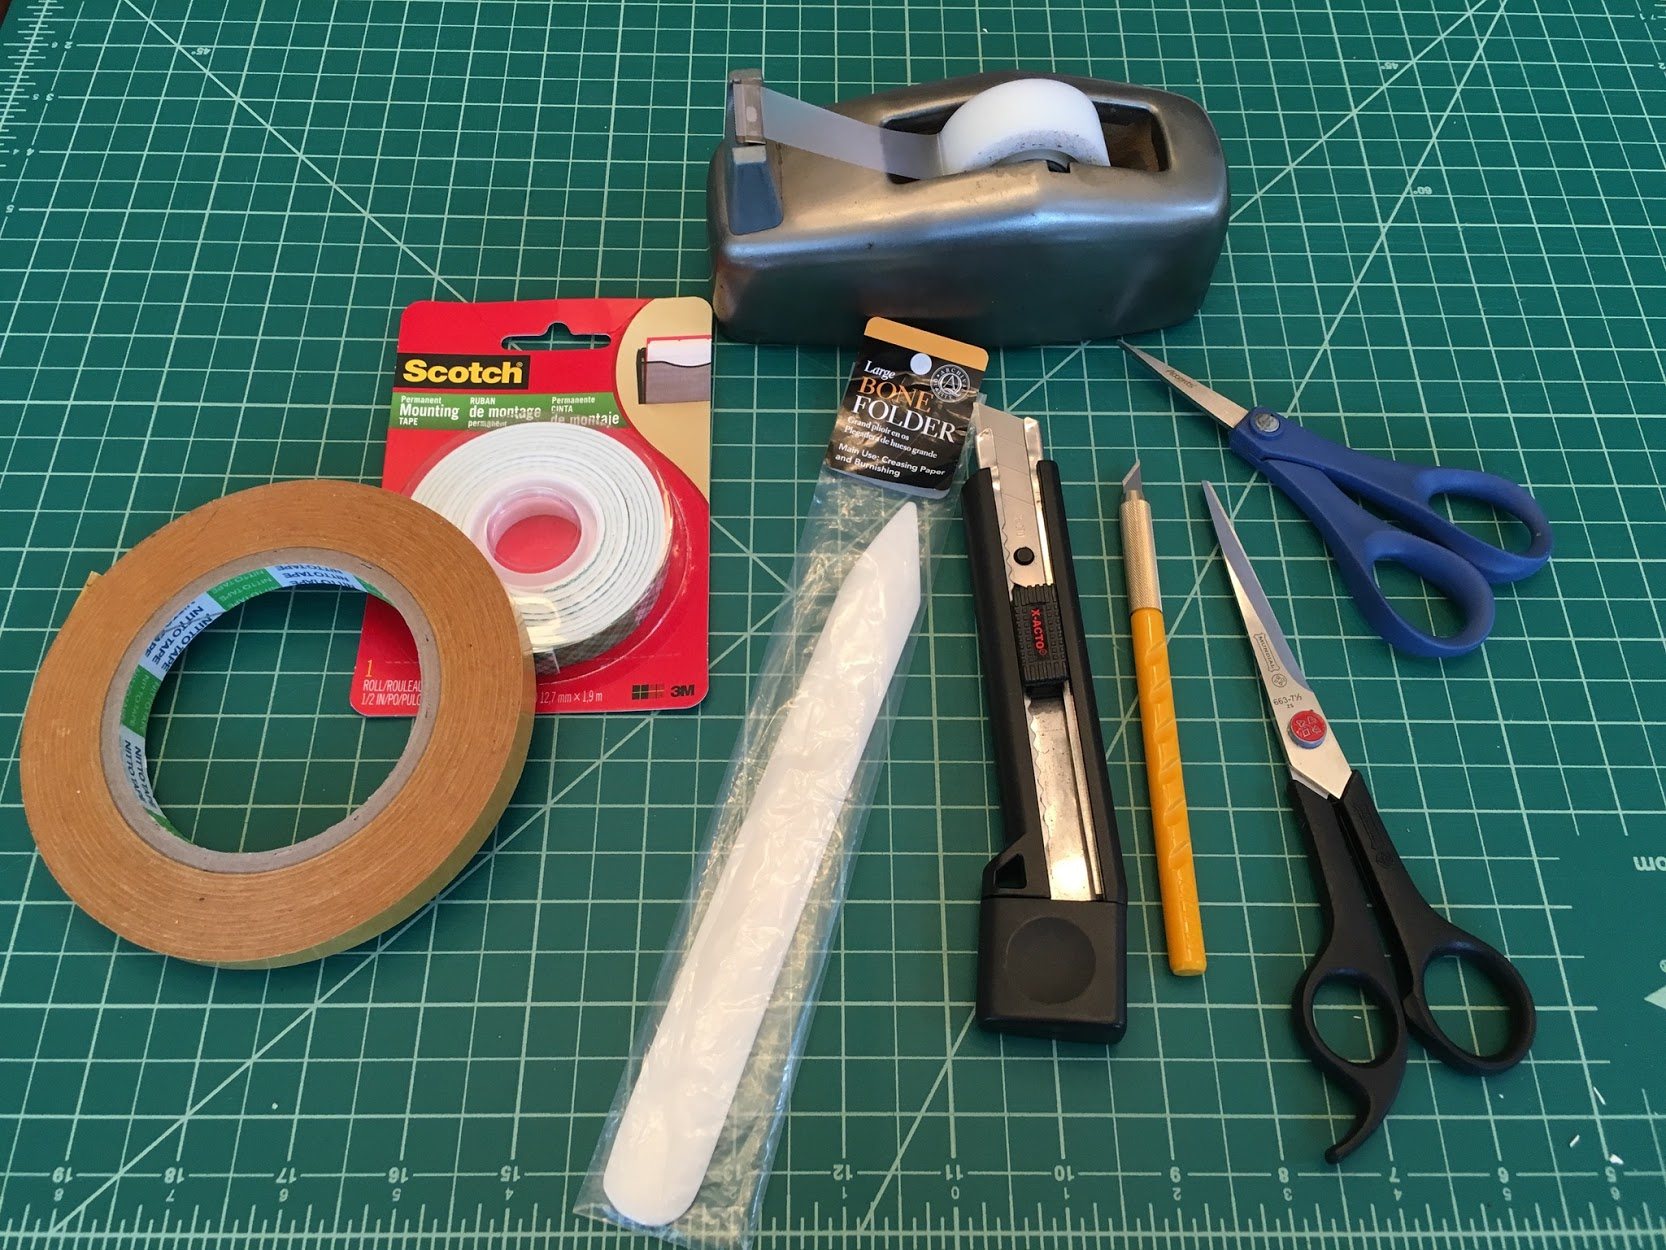 Tools for assembly